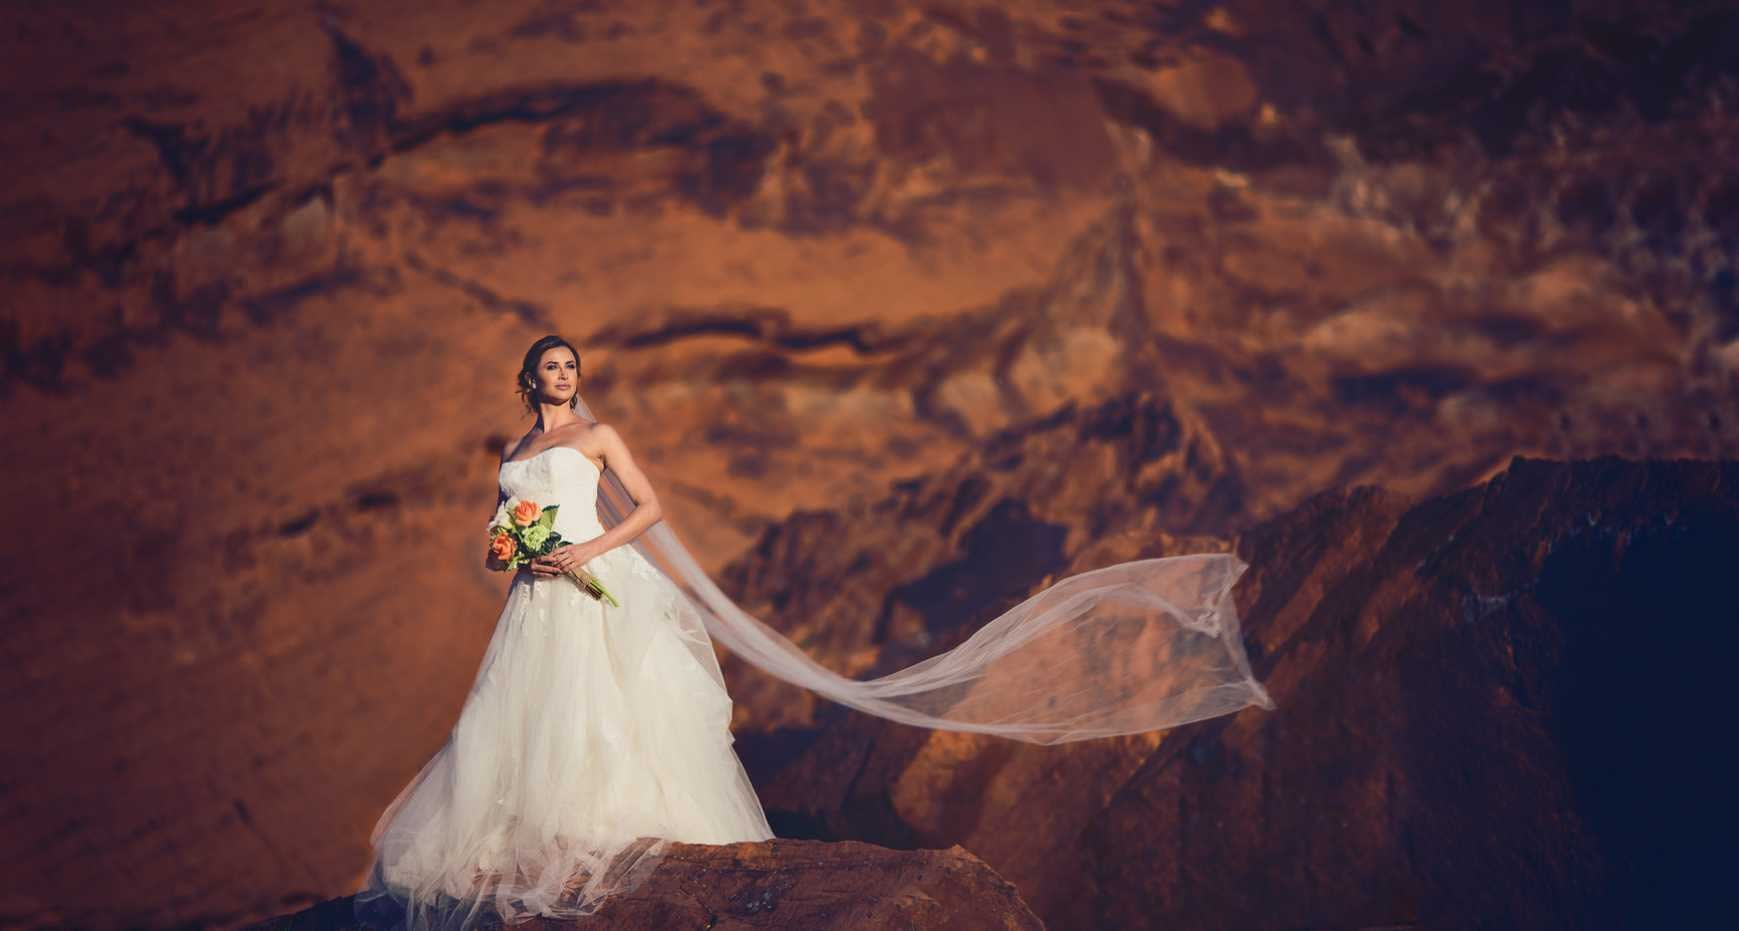 Dramatic bridal shot with flowing veil in the mountains by wedding photographers